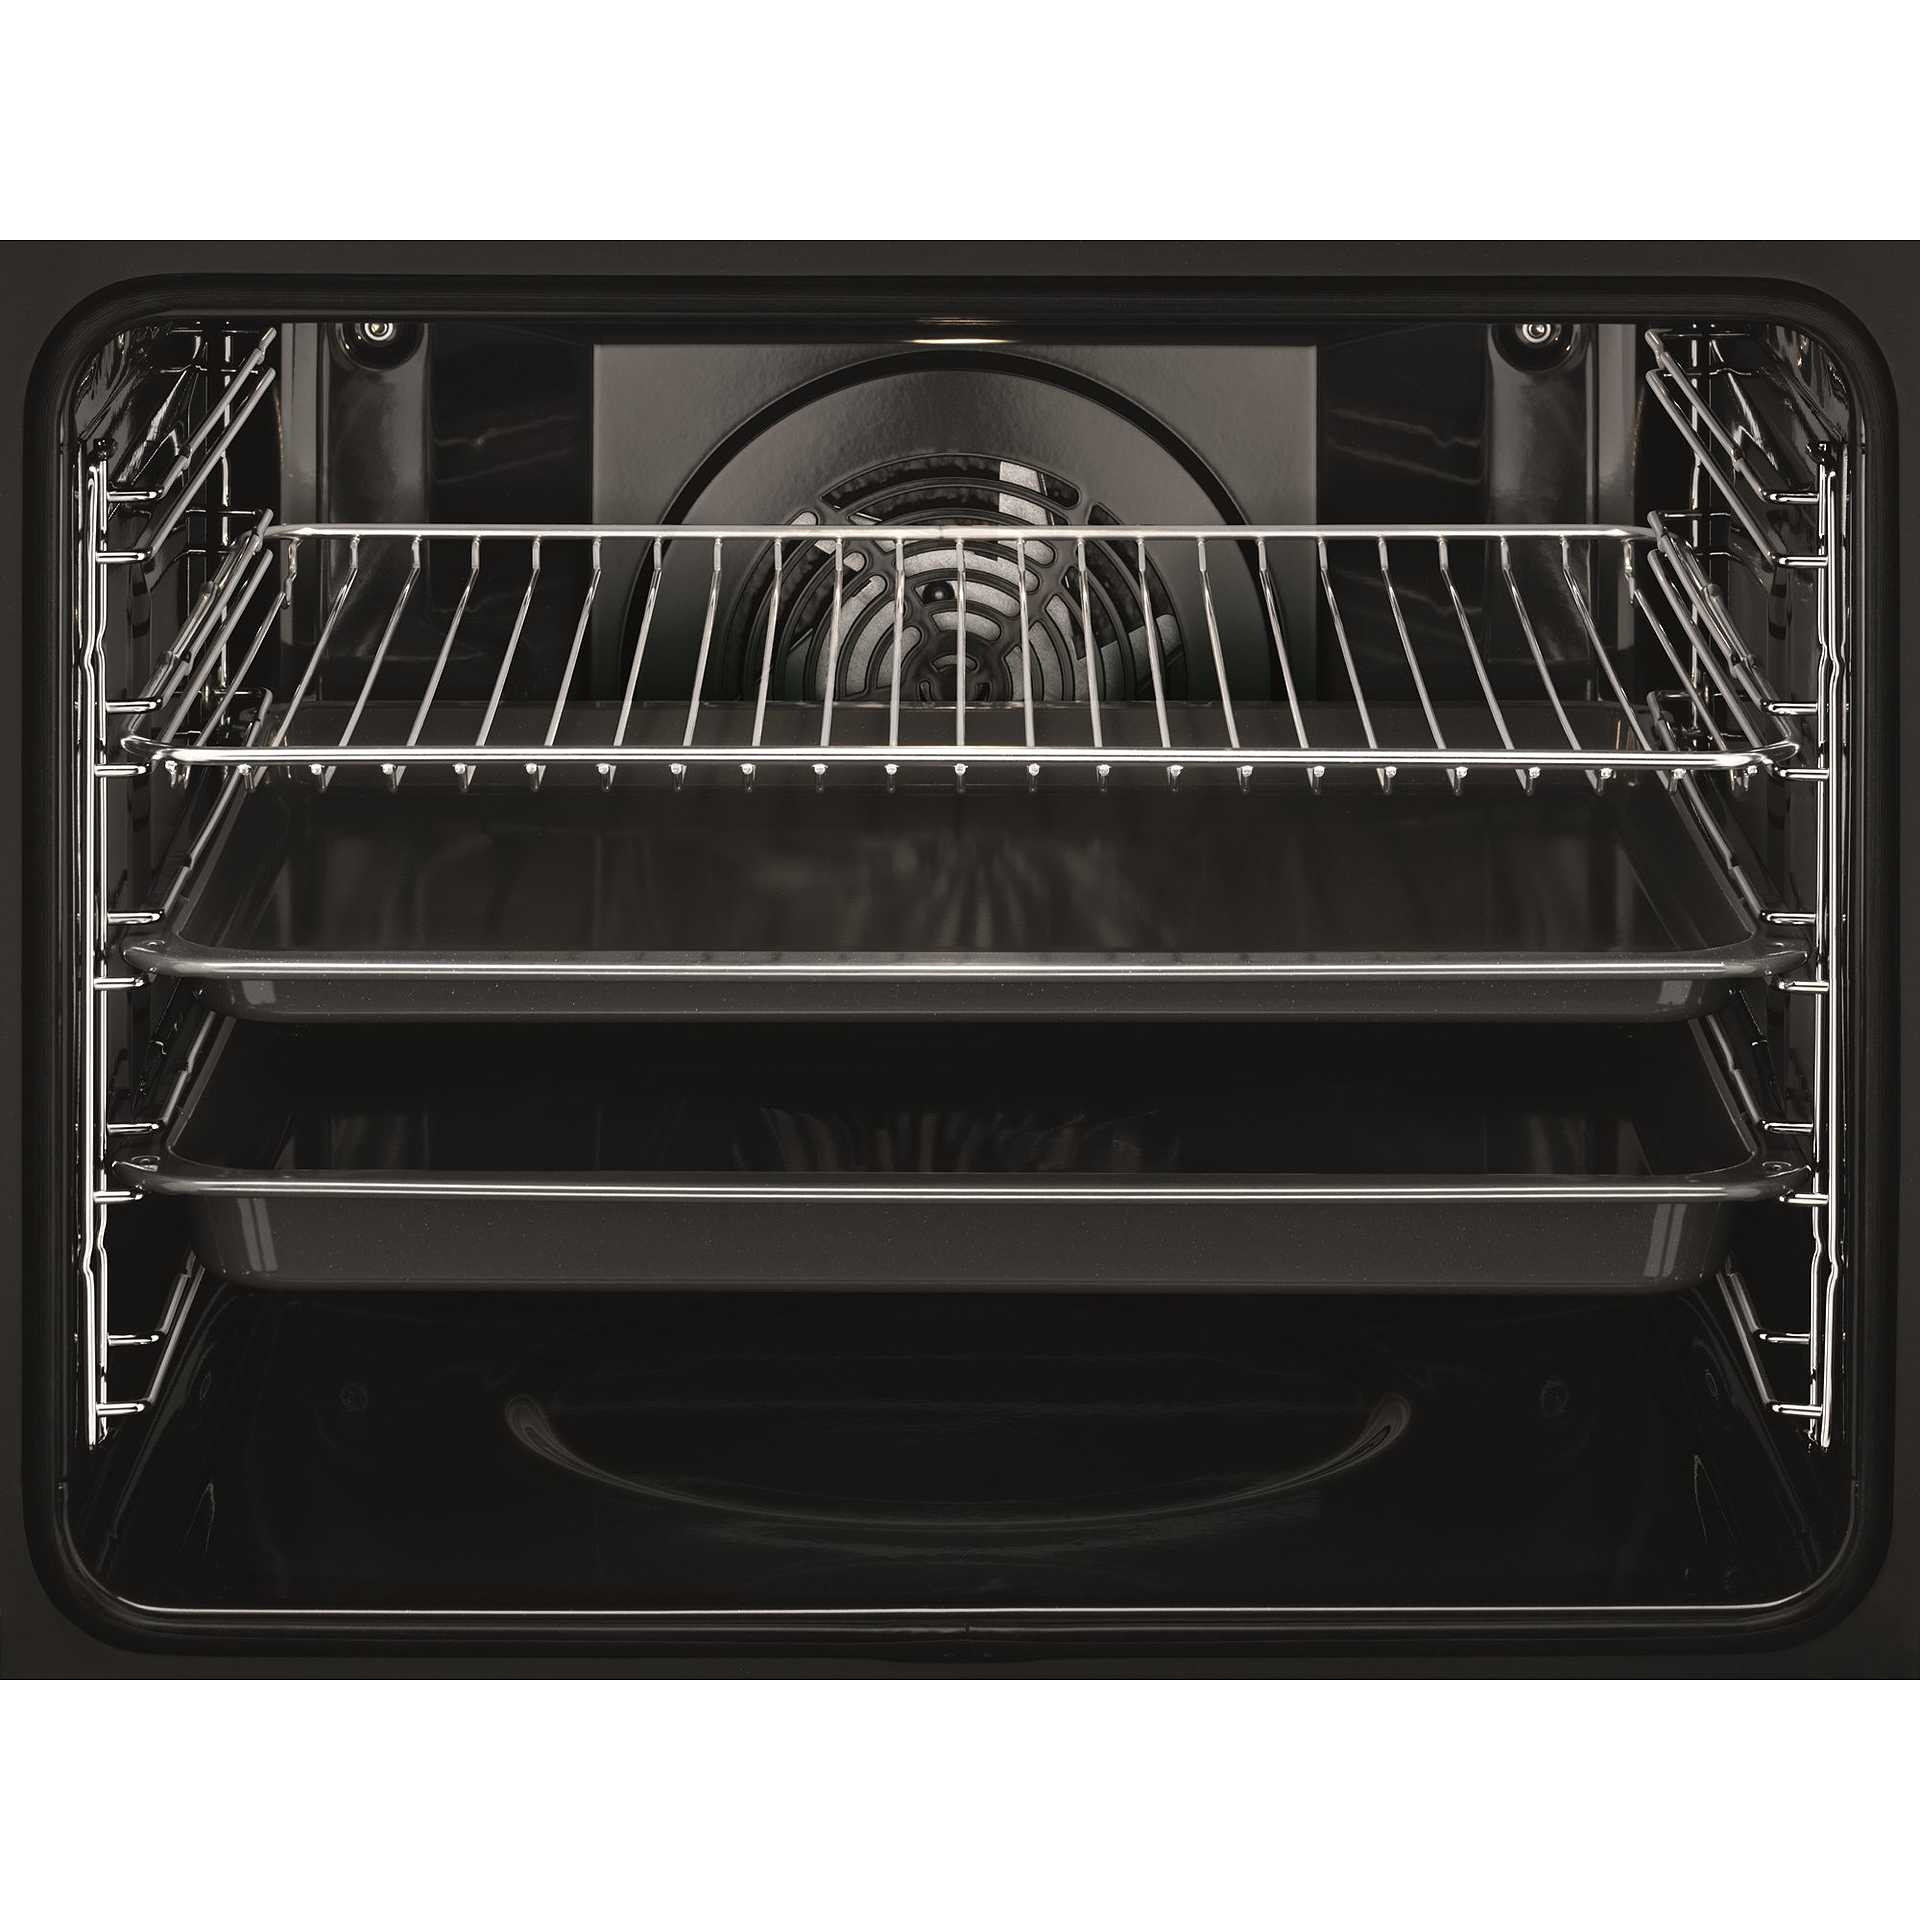 Stunning Forno Rex Electrolux Pictures - Monarquiahispanica.com ...